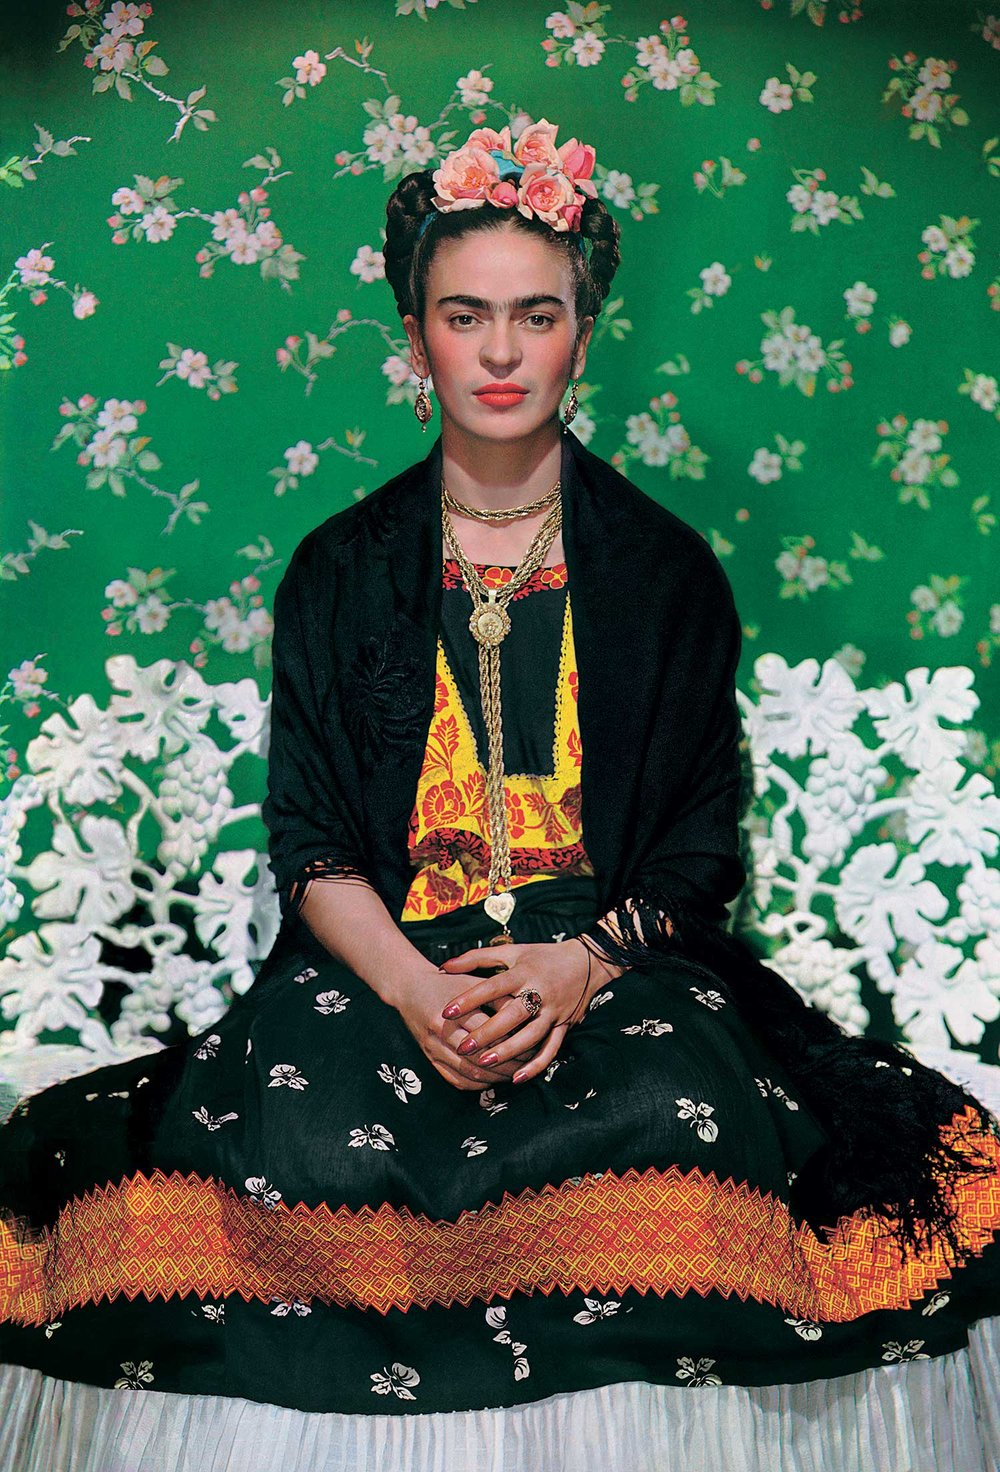 Image credit: Frida on the bench, 1939, photograph by Nickolas Muray © Nickolas Muray Photo Archives